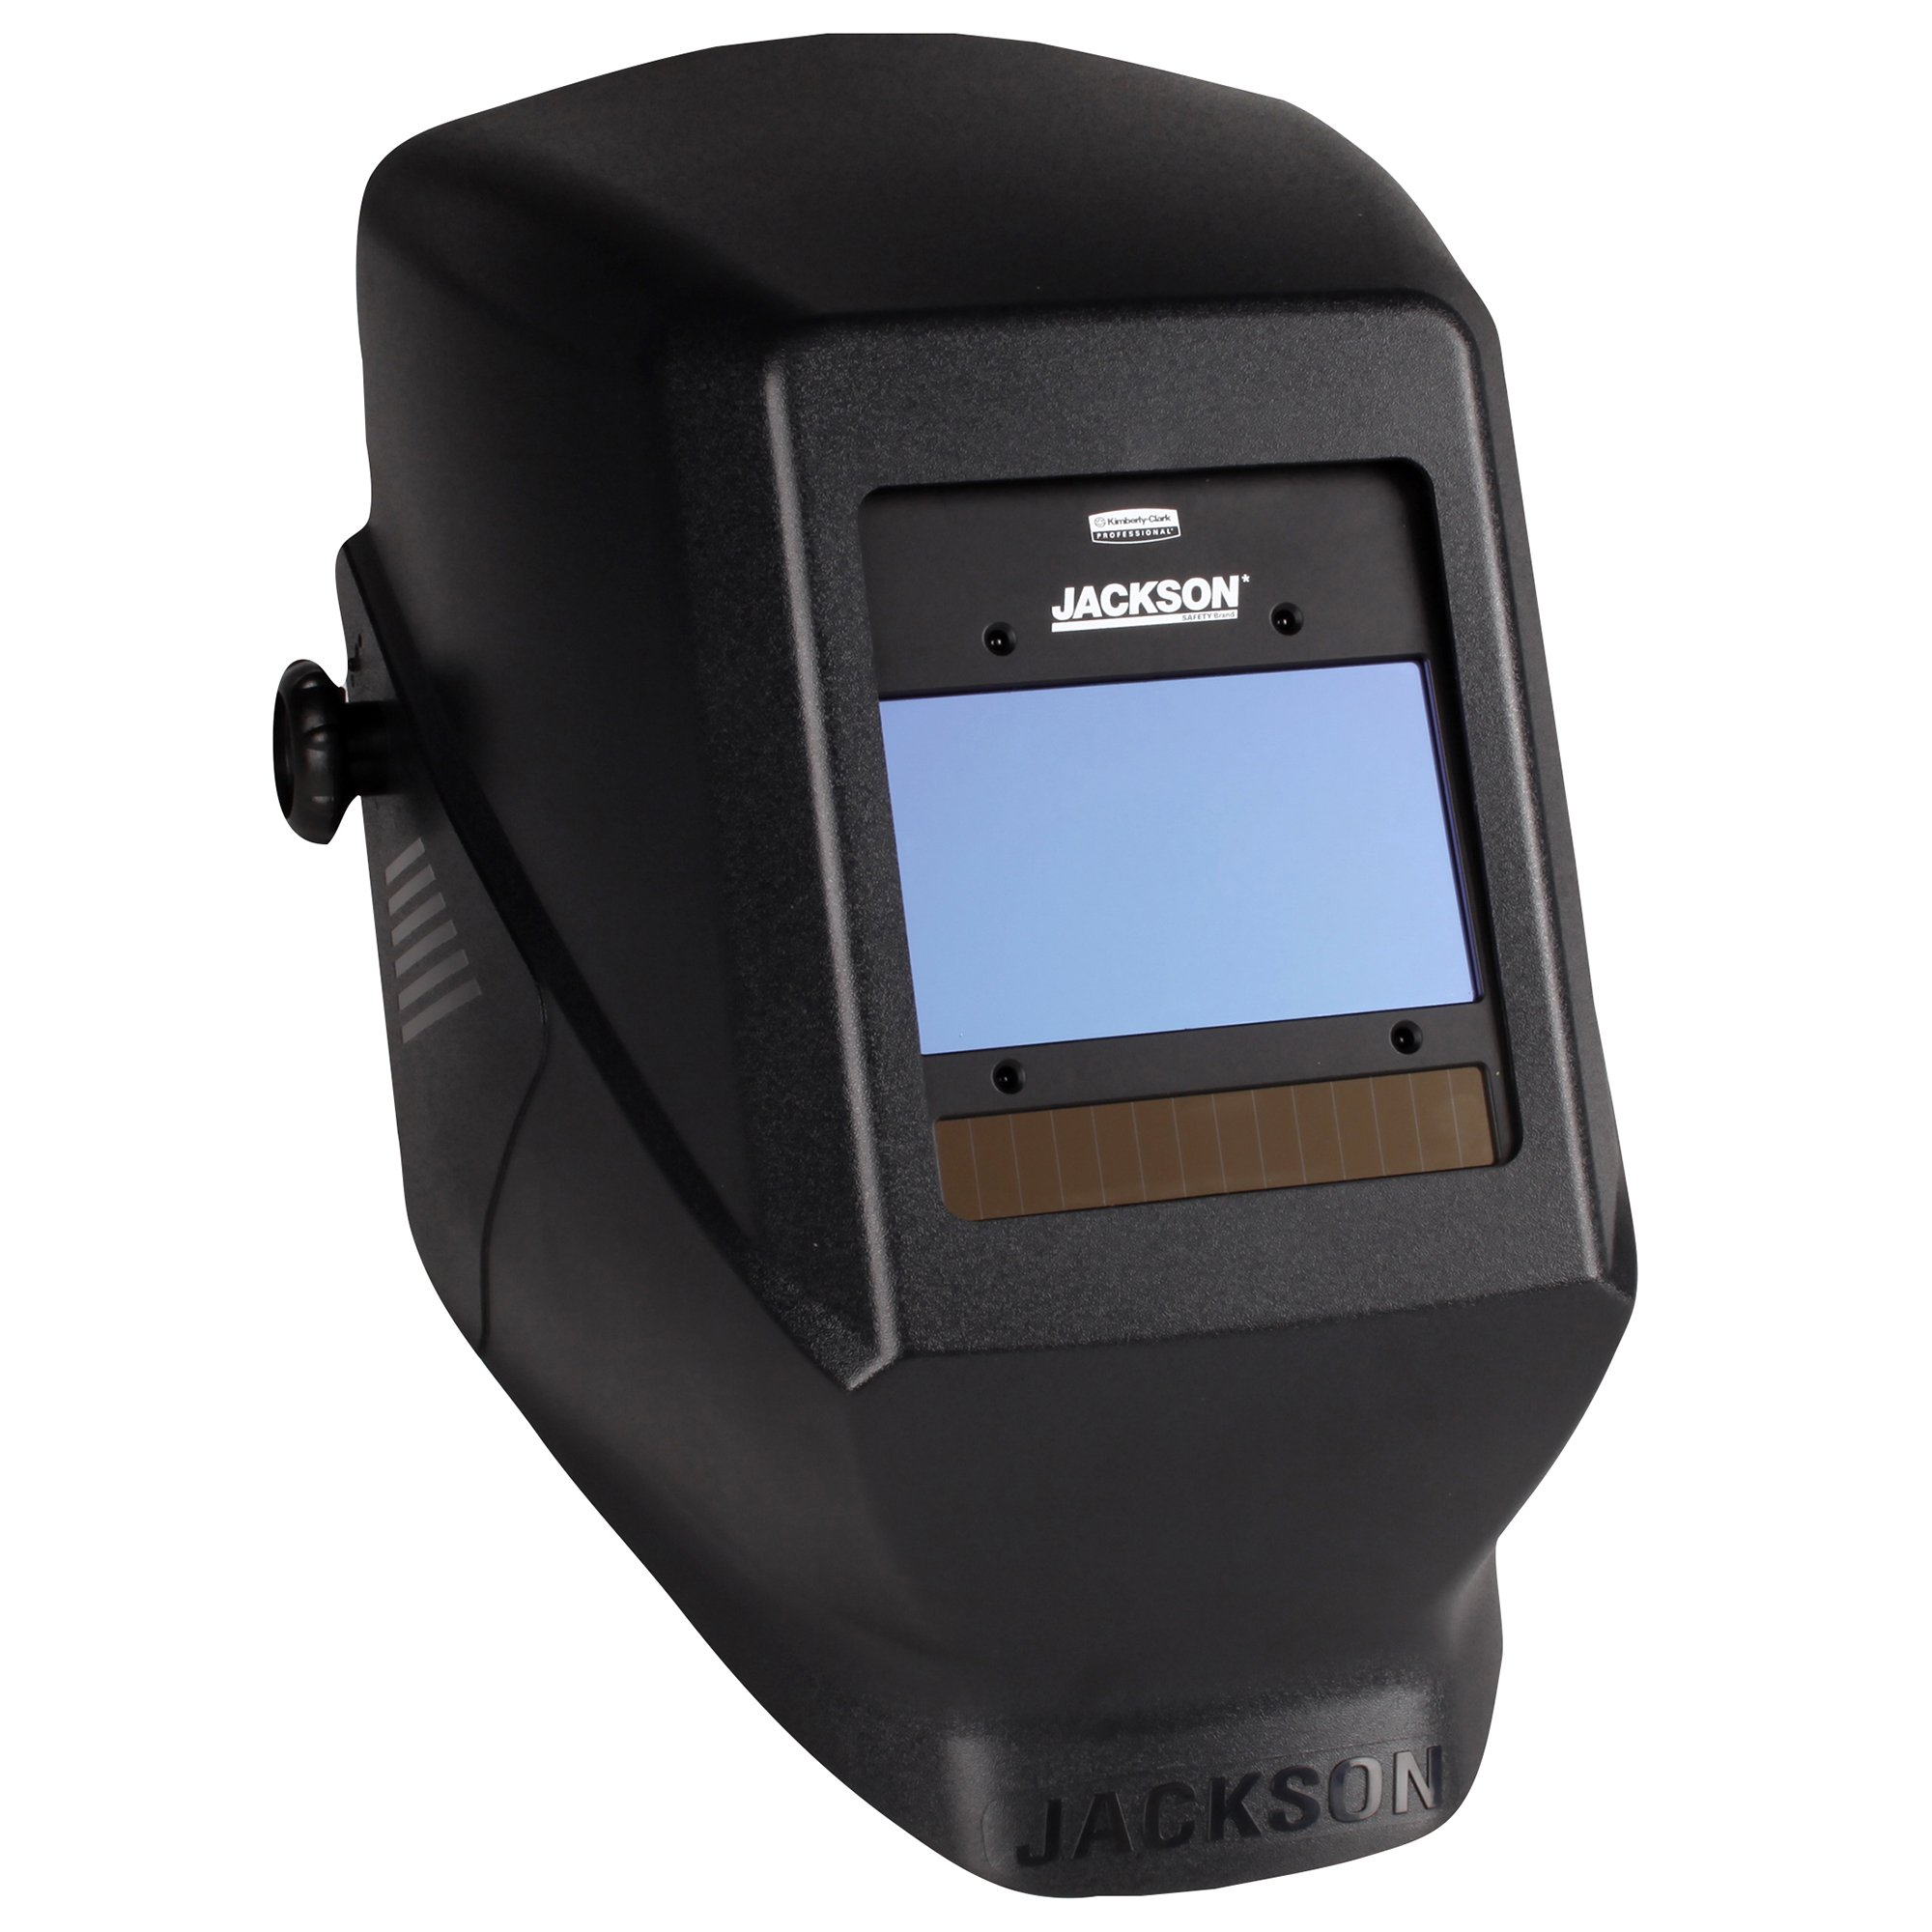 Jackson Safety Insight Variable Auto Darkening Welding Helmet, HSL100 (46129), Black, 1 Helmet / Order by Jackson Safety